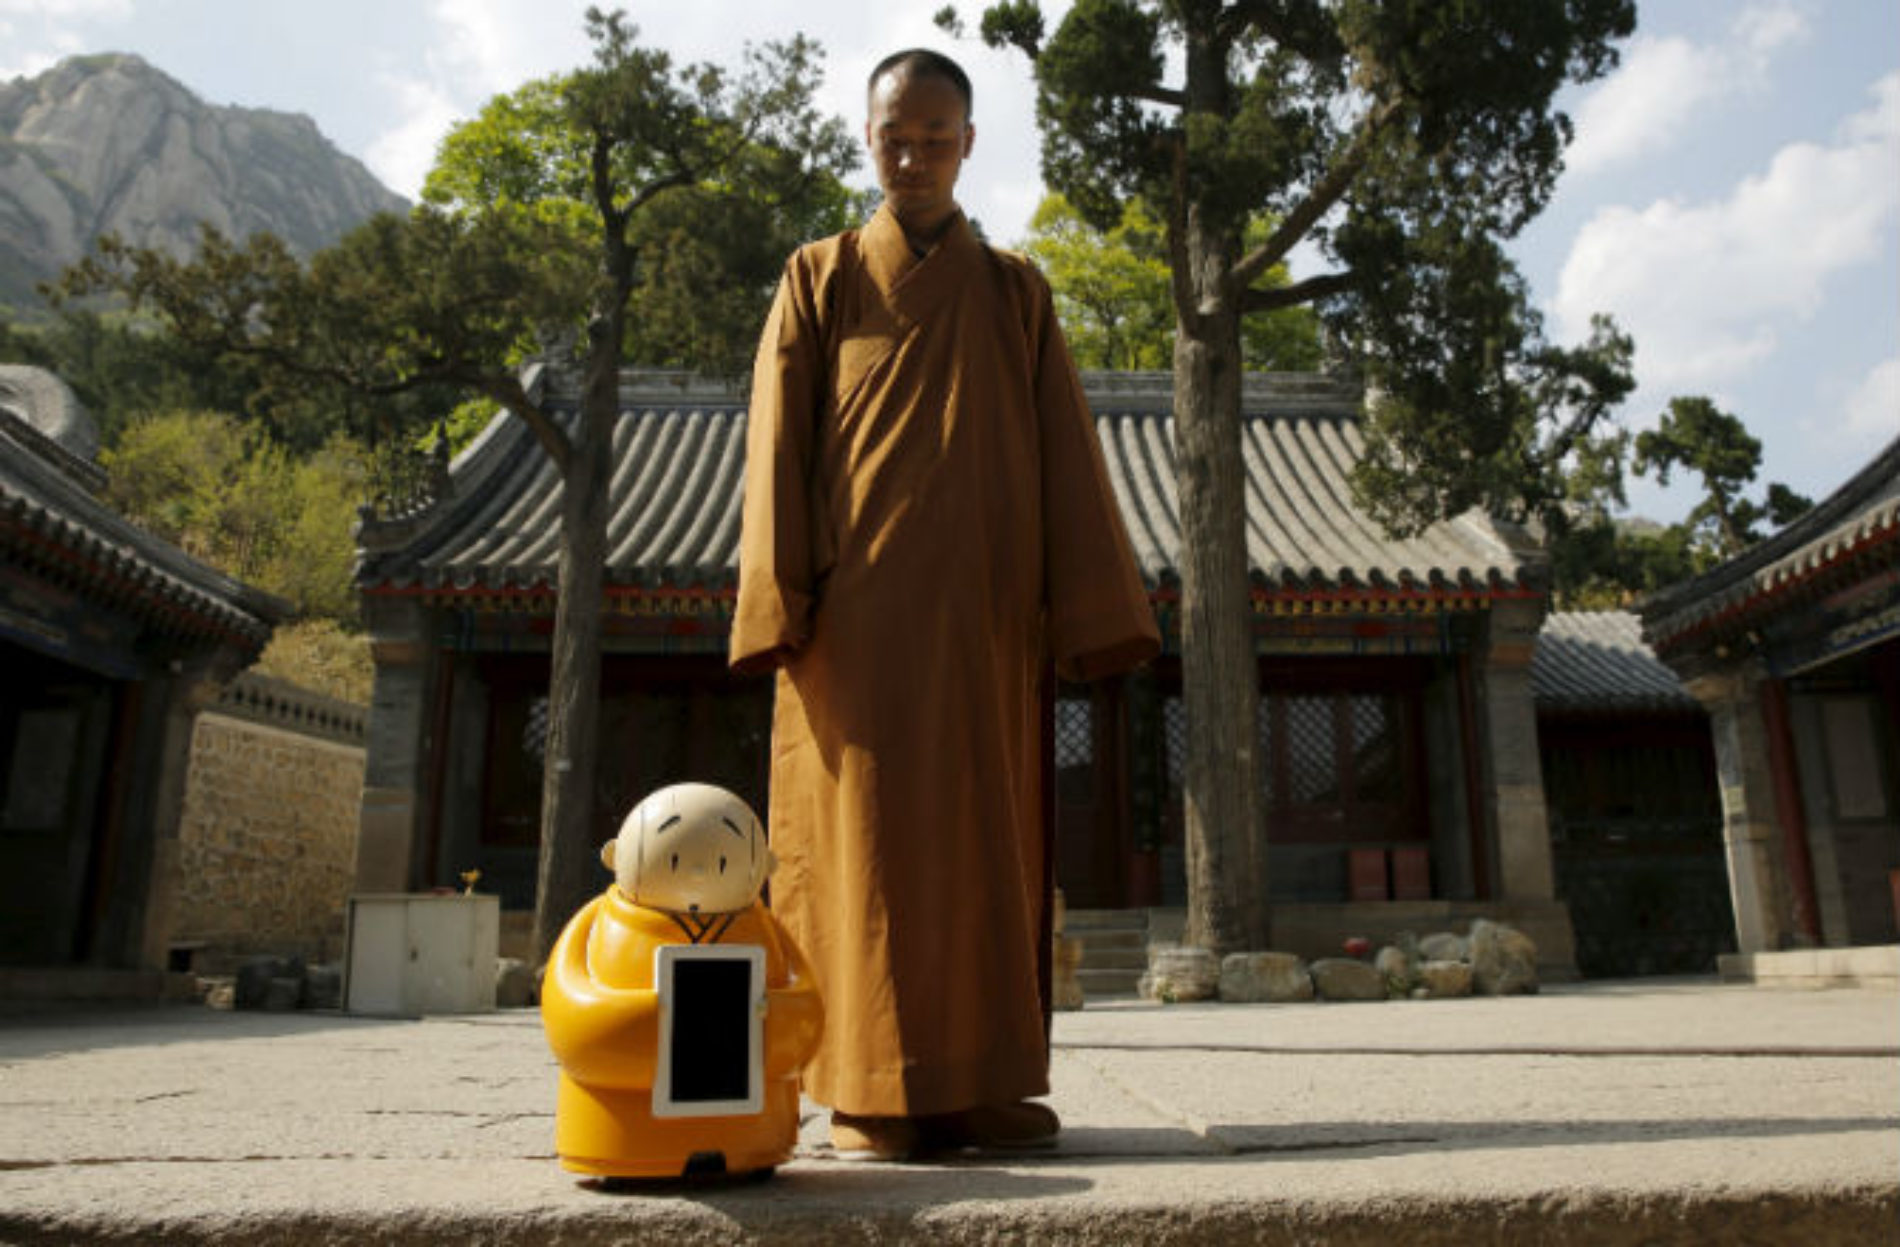 Robots as a spirituality guides?